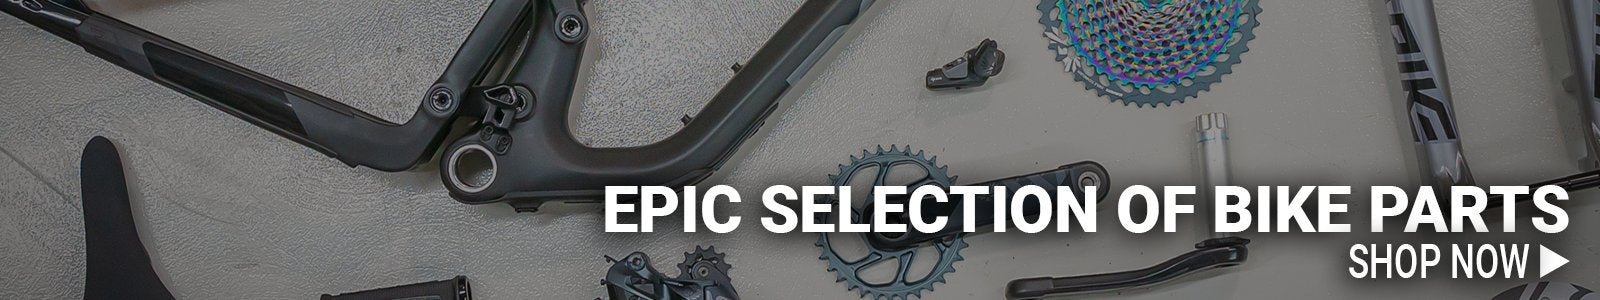 Slideshow - Epic Selection of Bike Parts